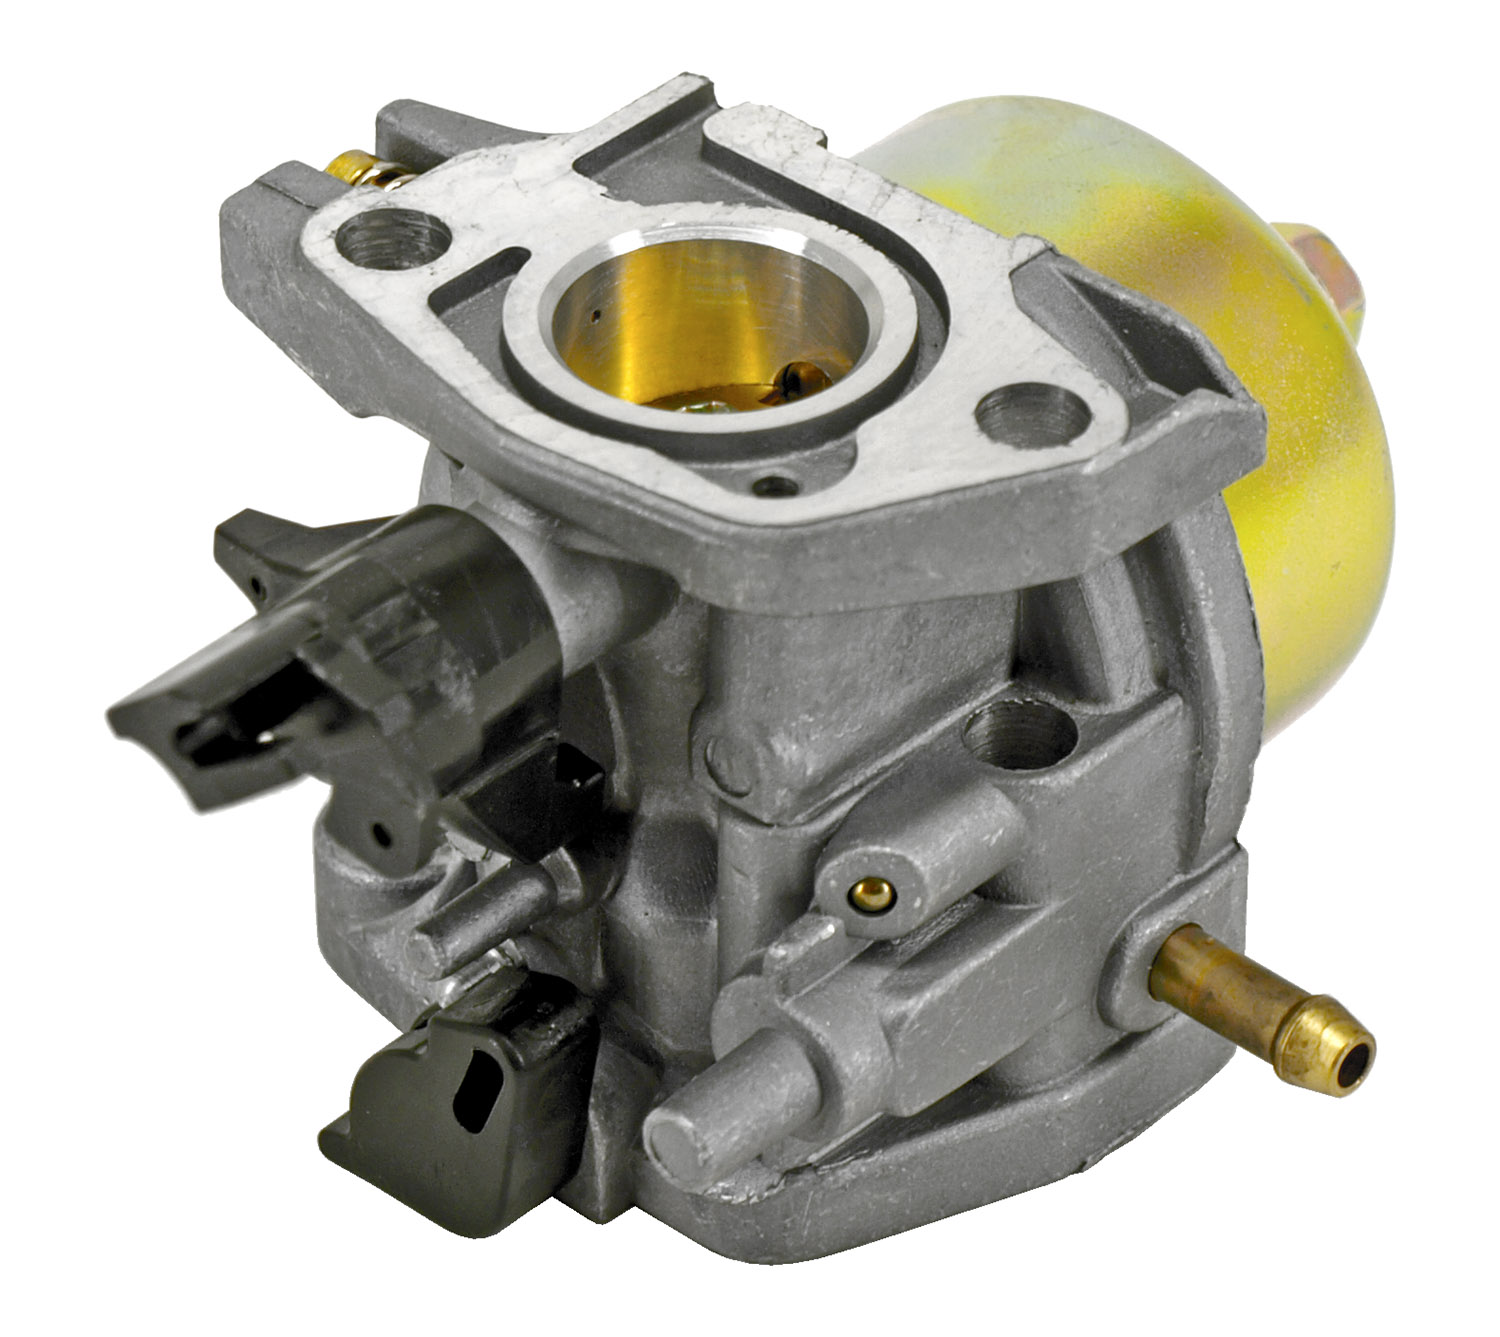 Raisman Carburetor For Honda GX200 Generator - 46-GX-200/GE